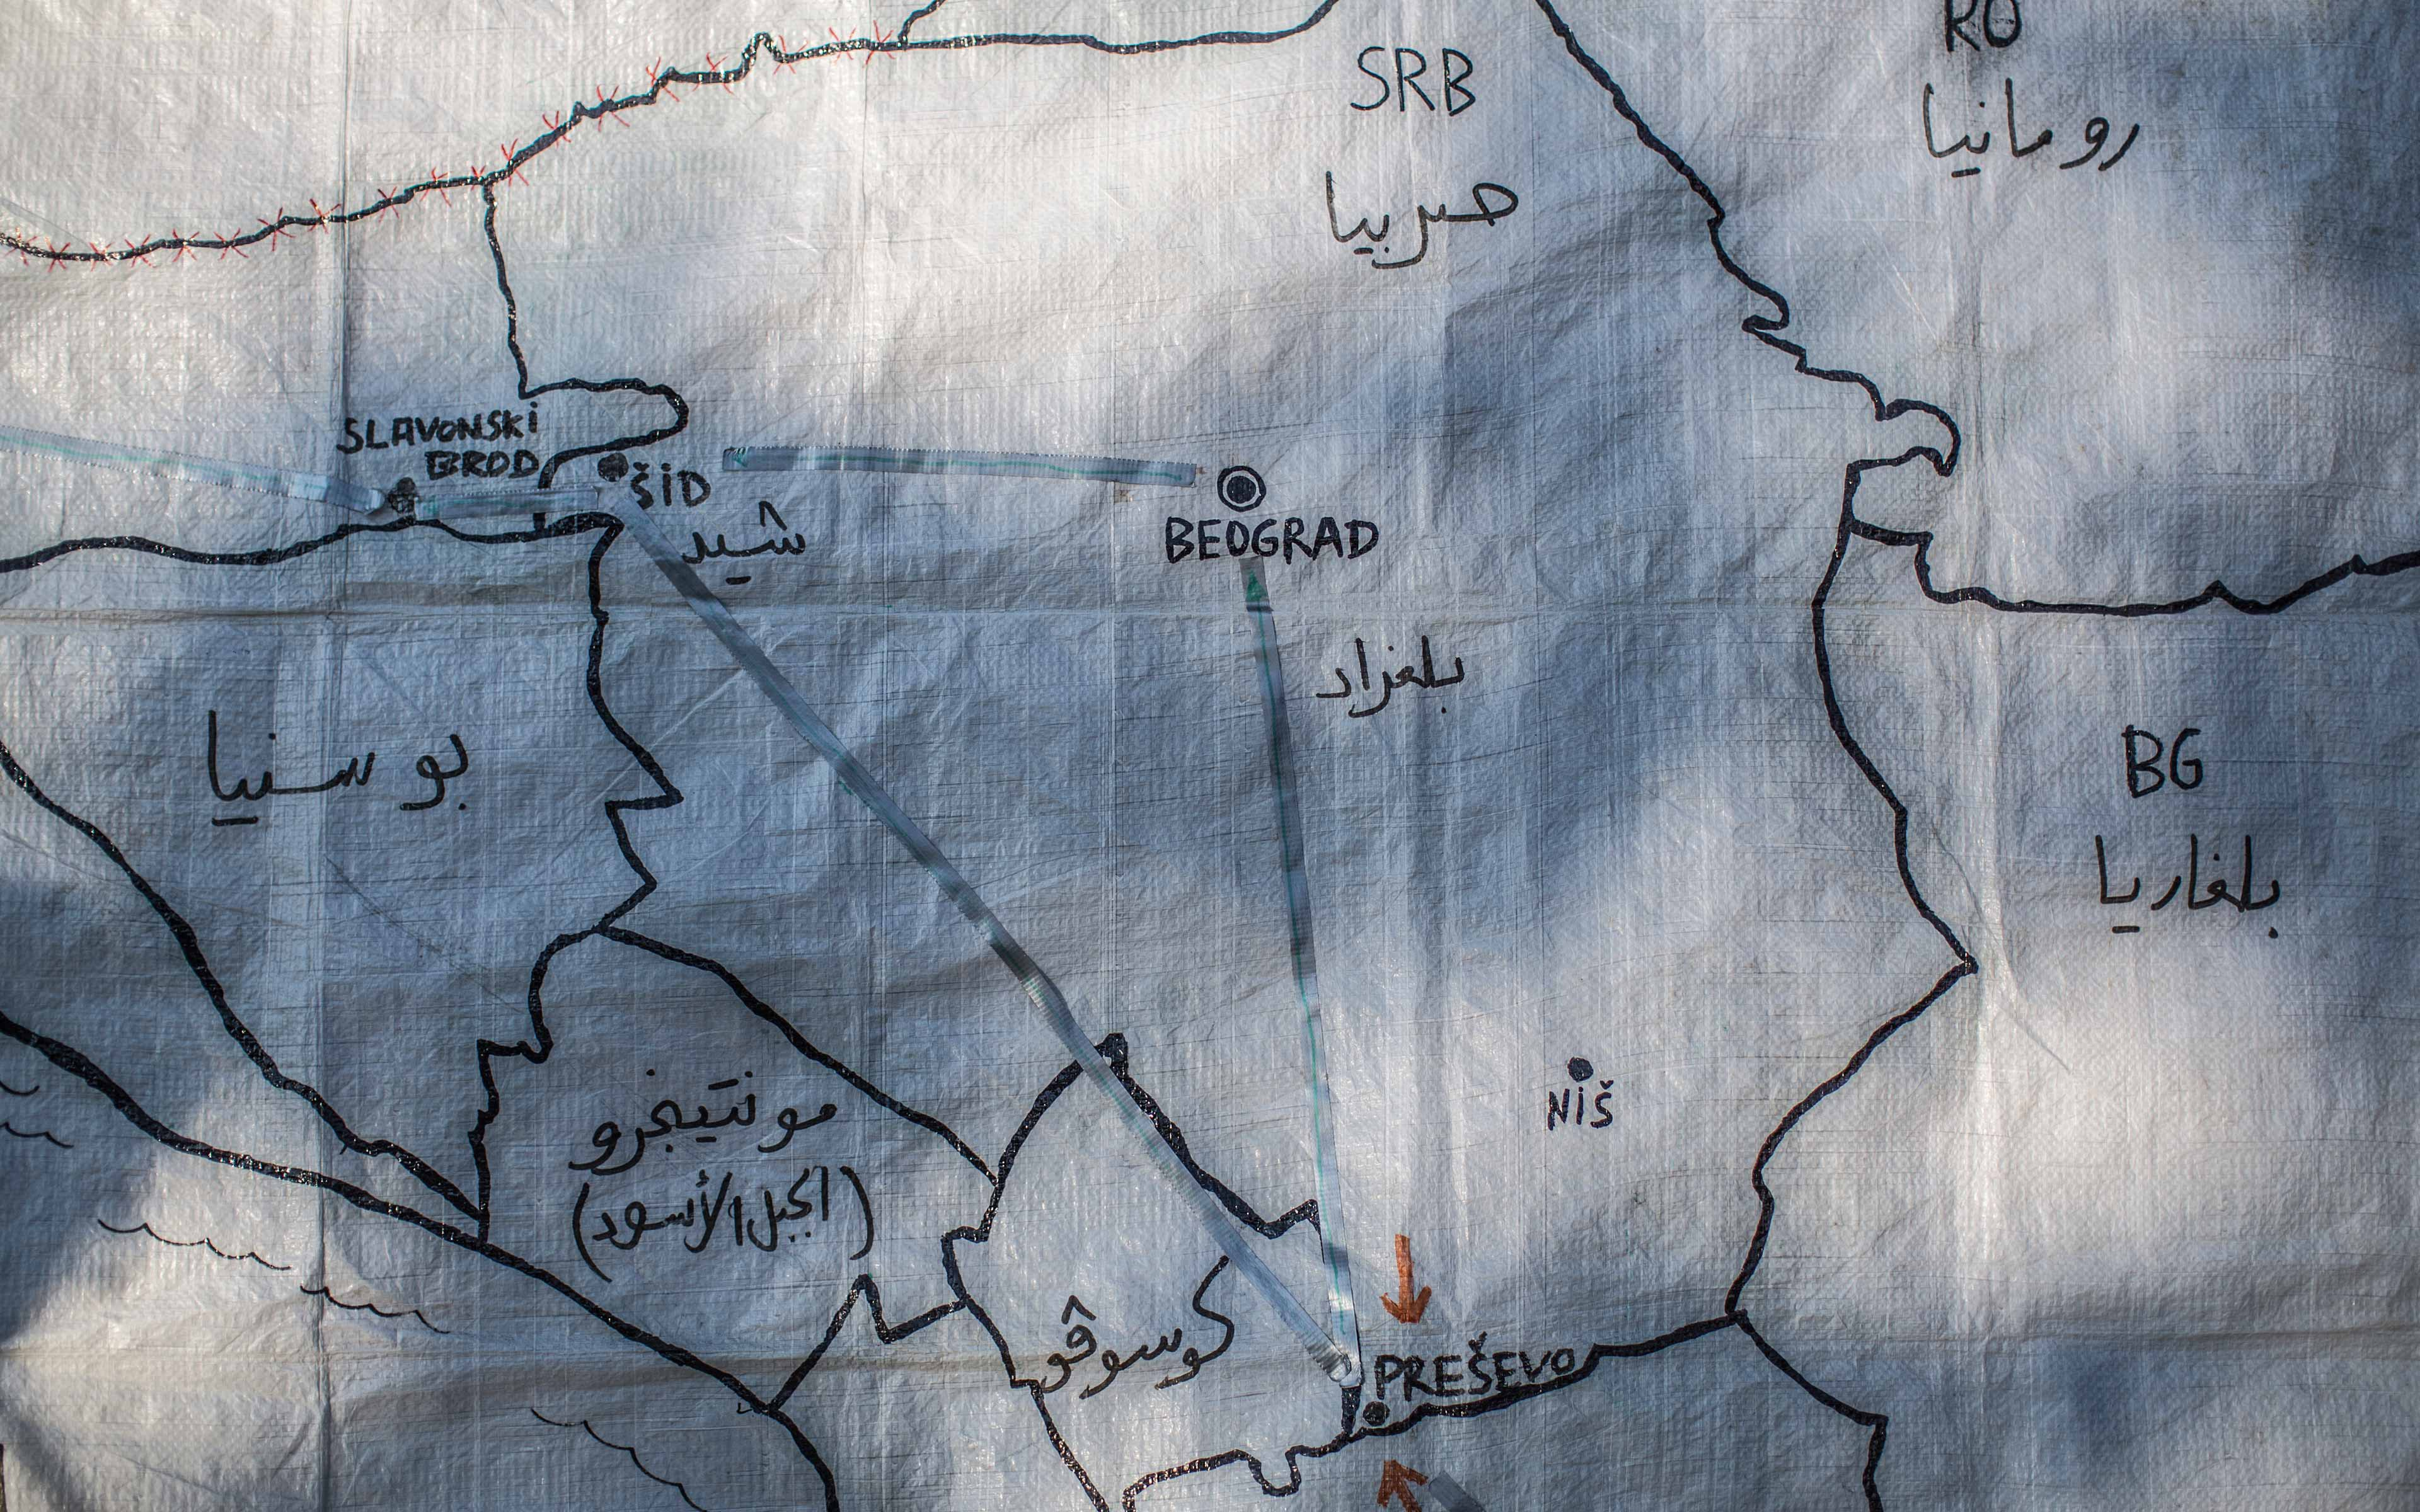 """A map drawn on a piece of plastic sheeting marks key points in Serbia— Presevo and Sid-- for refugees making their way toward safety. """"There is a common feeling in Zaatari, in Lebanon, in Turkey, or in the Balkans route and it is that there is no Syria where they (refugees) can go back to,"""" says photographer Pablo Tosco."""